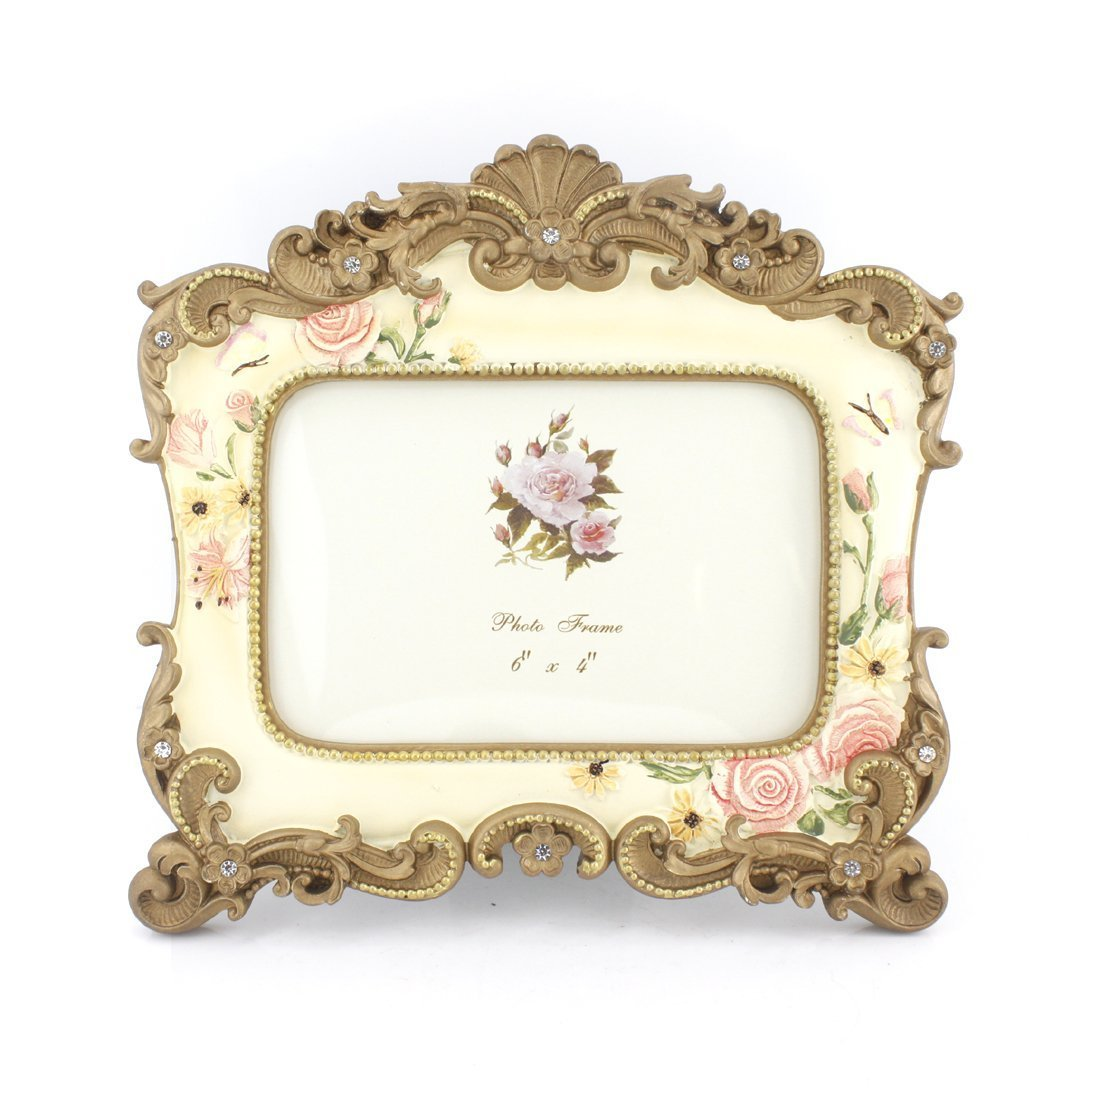 4x6 Inches Victorian Floral Decorated Rectangular Photo Frame for Home Decor